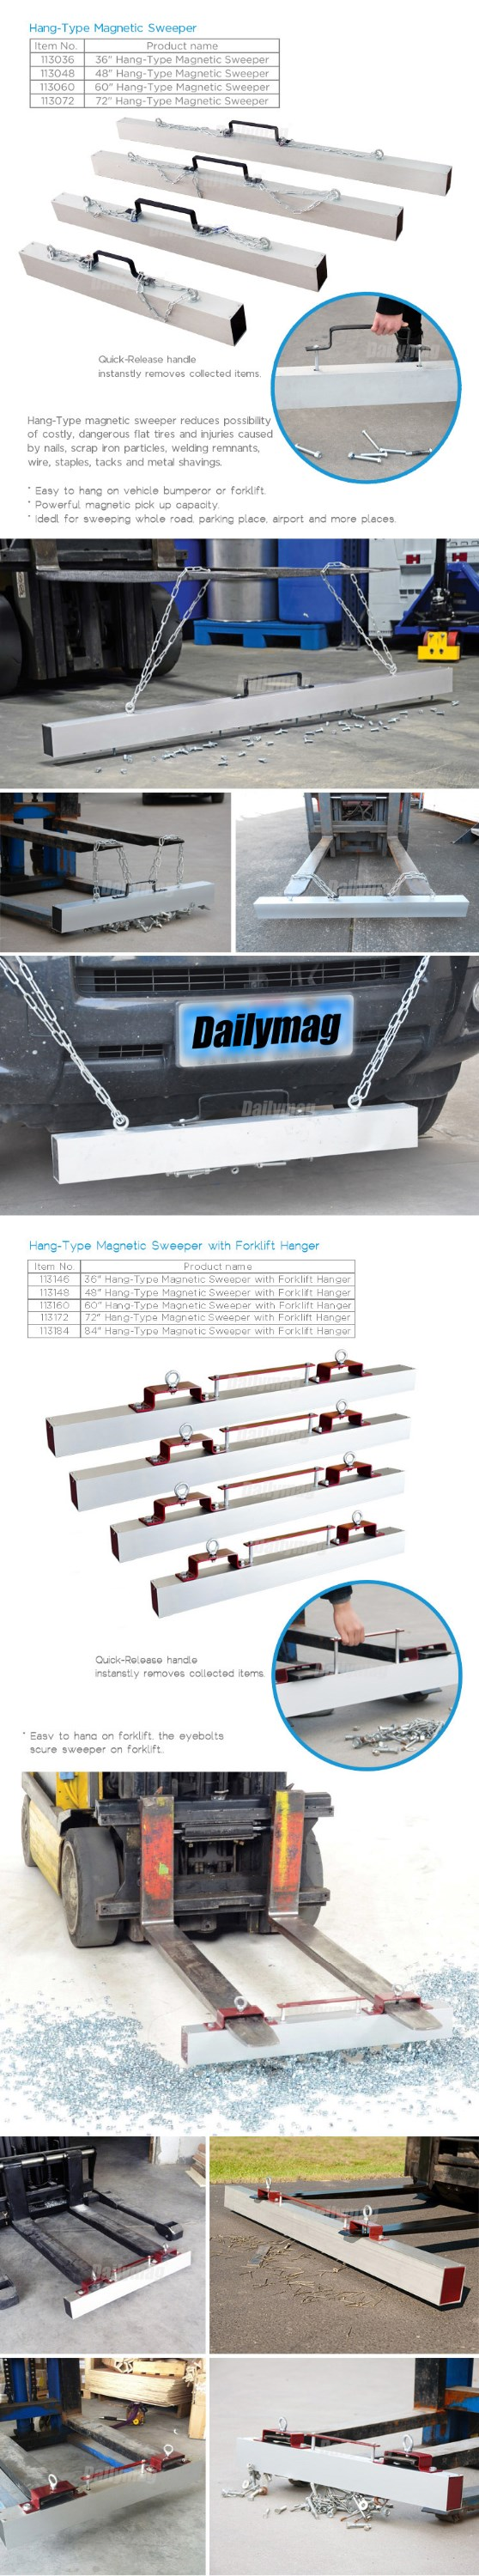 Truck Tractor Forklift Mounted Magnetic Road Sweeper Brushes for Metal Nails Screws Cleaning